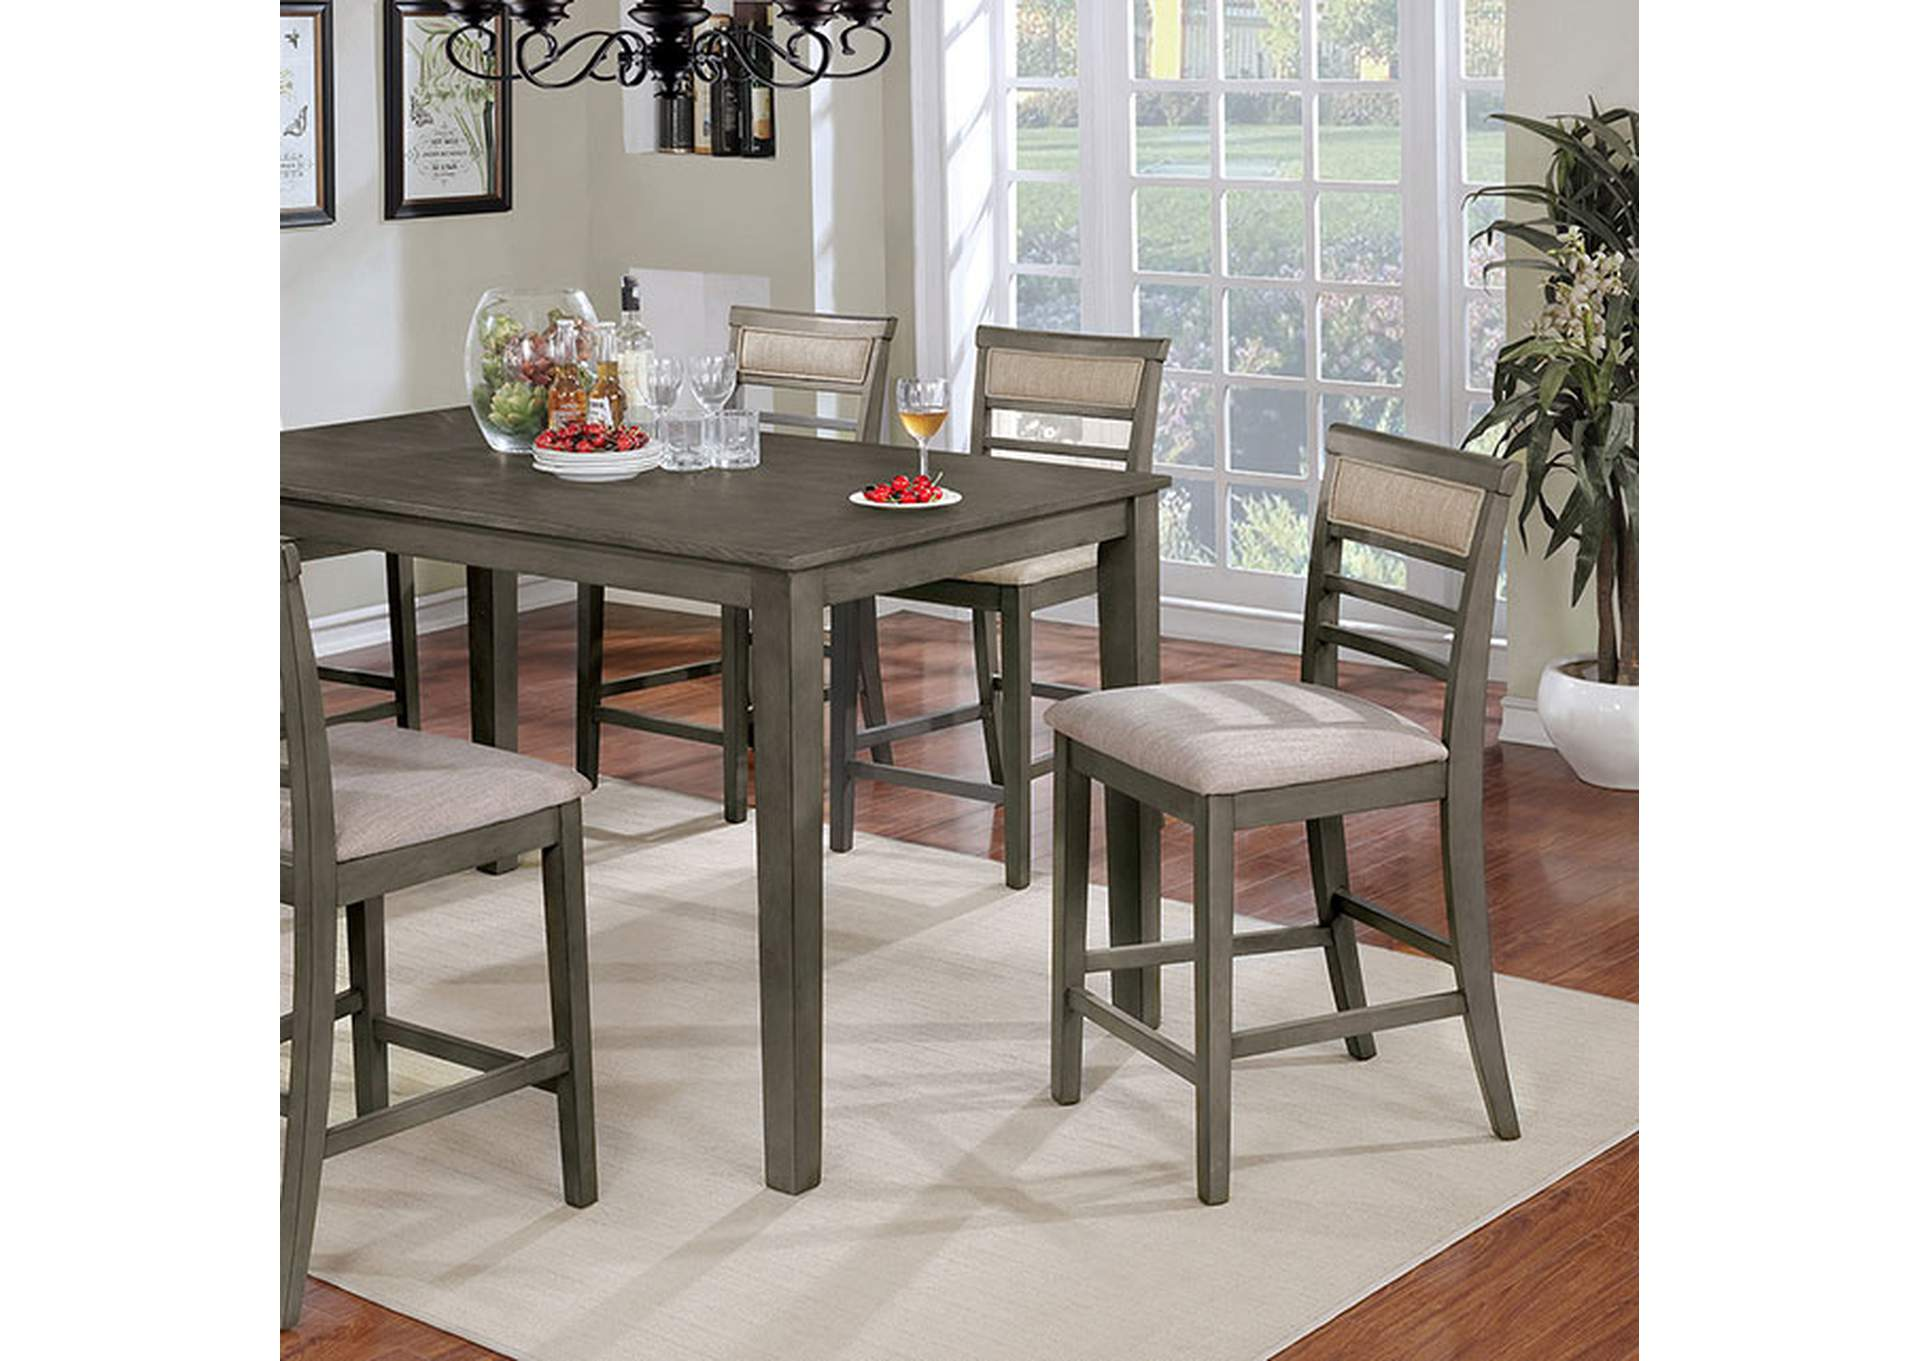 Fafnir Weathered Gray 7 Piece Counter Height Table Set,Furniture of America